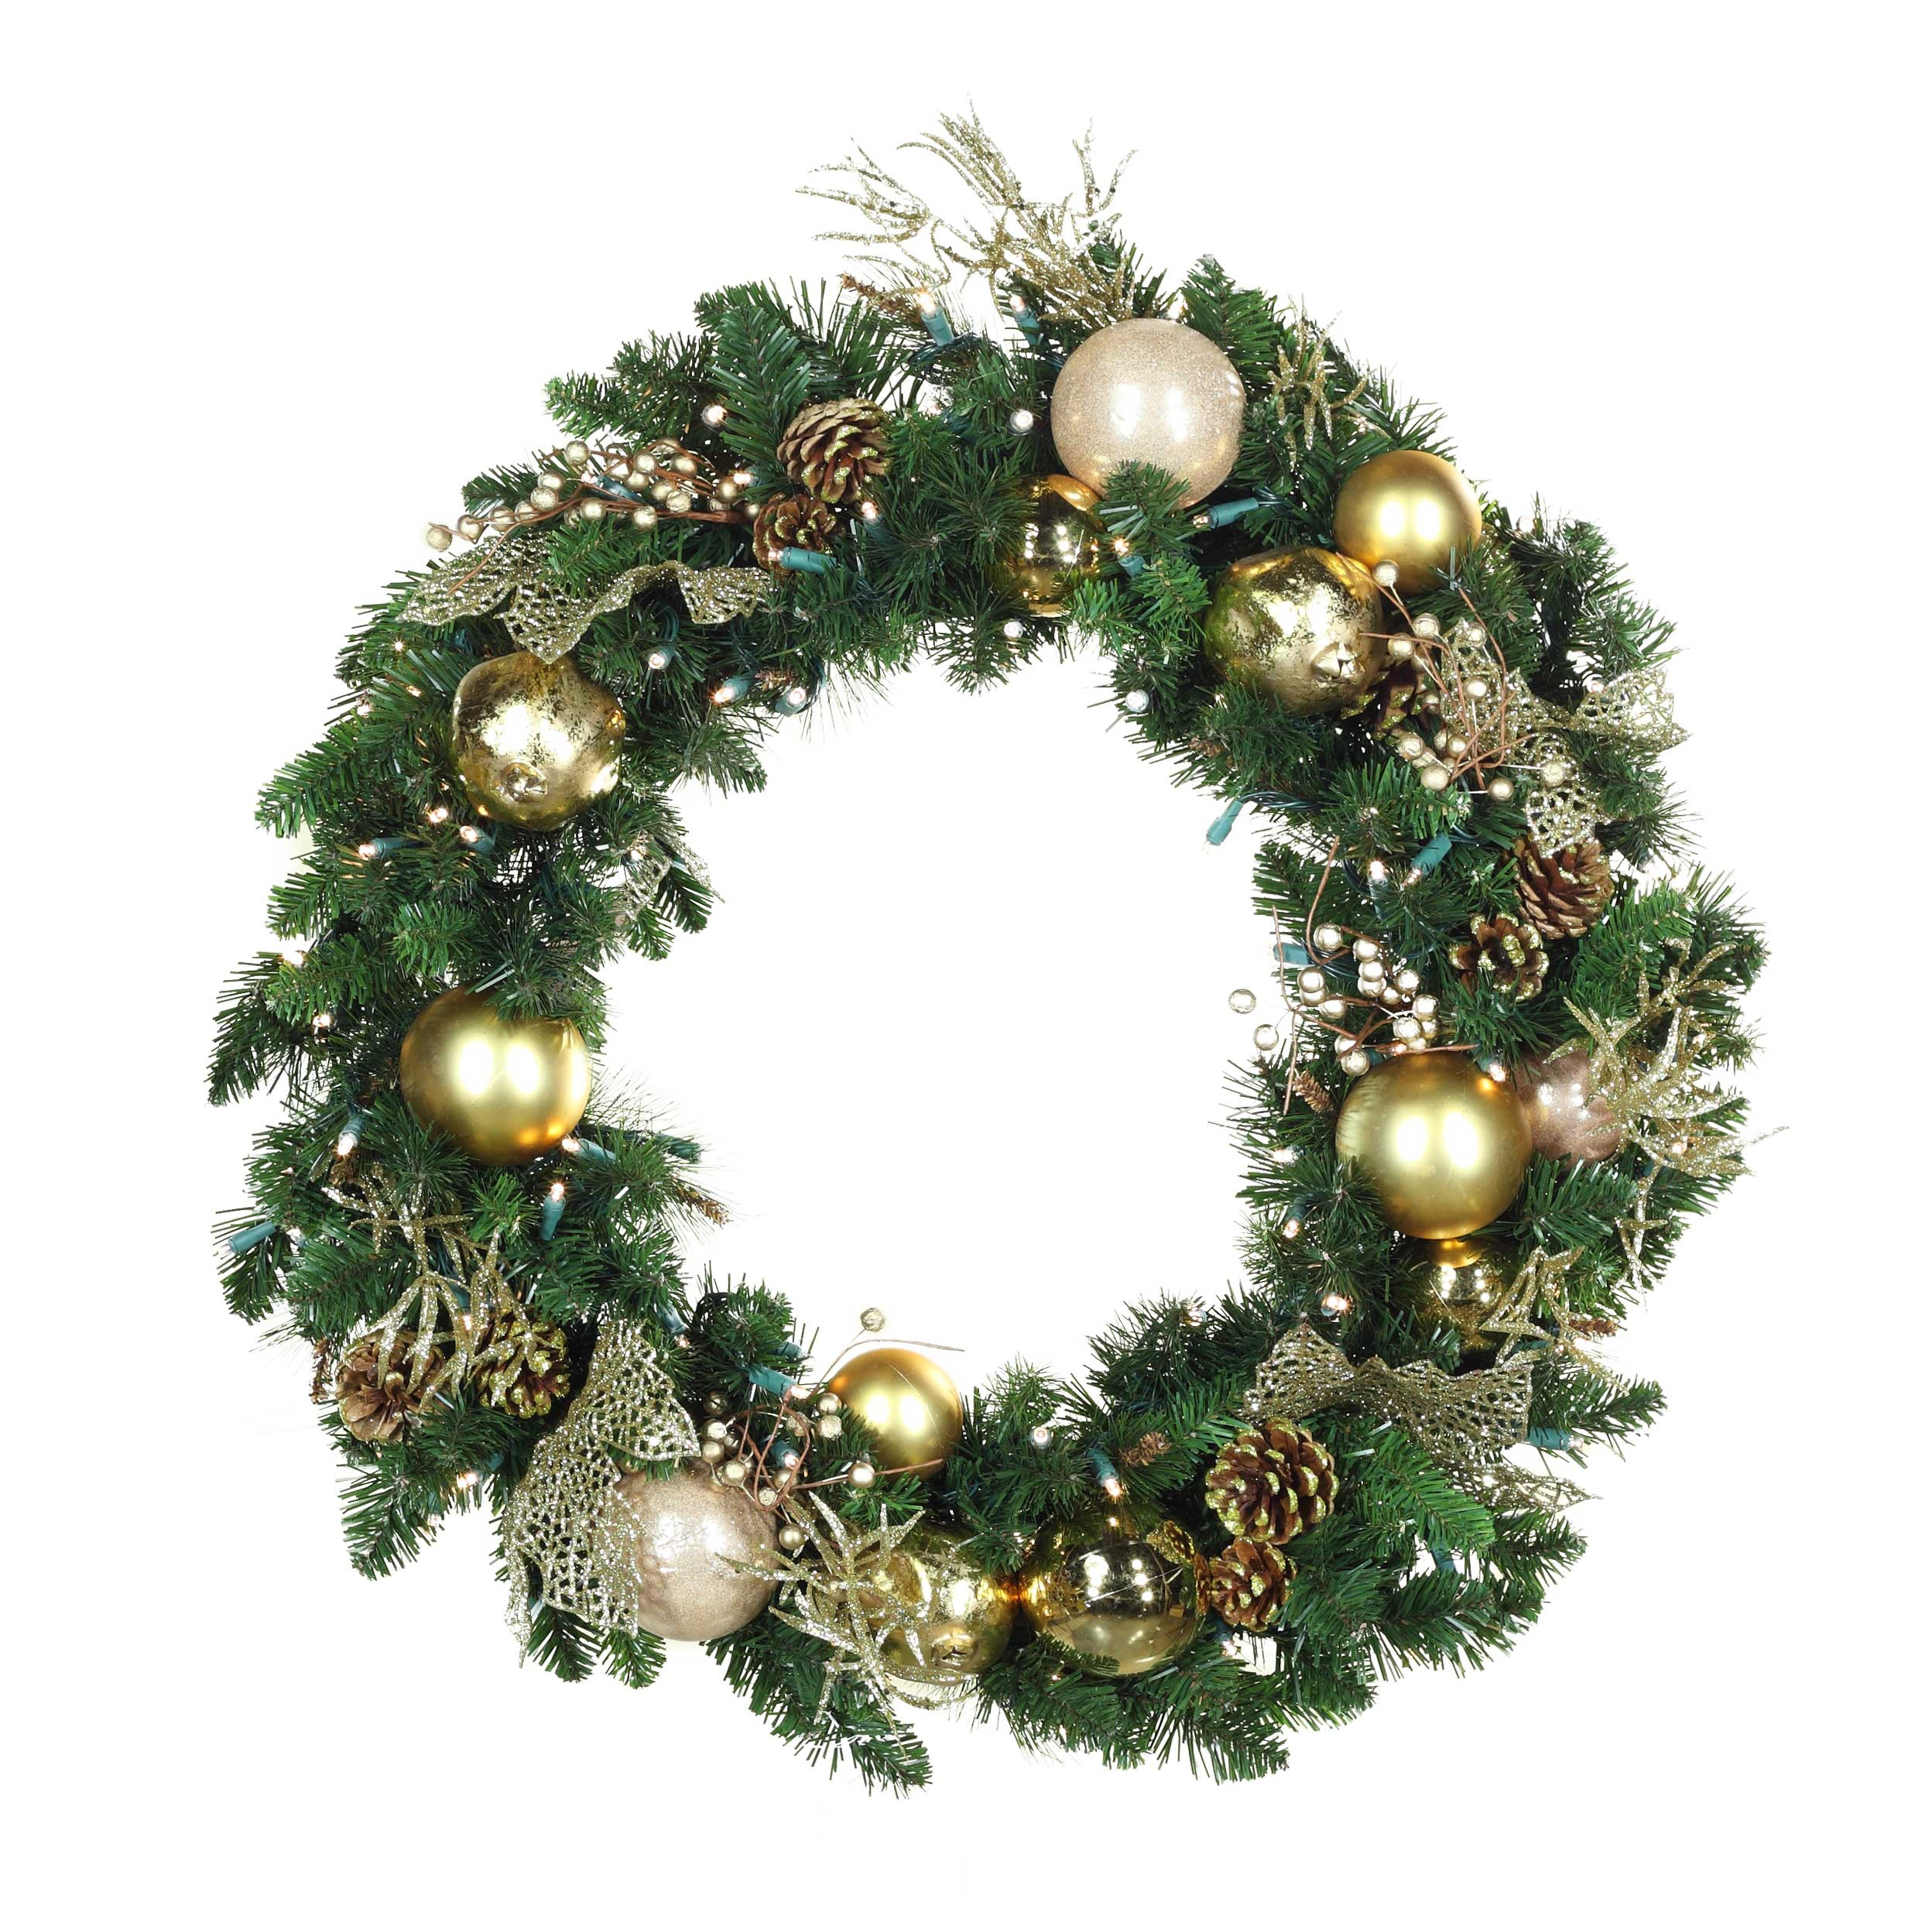 decorative wreaths royal gold battery operated led wreath warm white lights - Battery Lighted Christmas Decorations